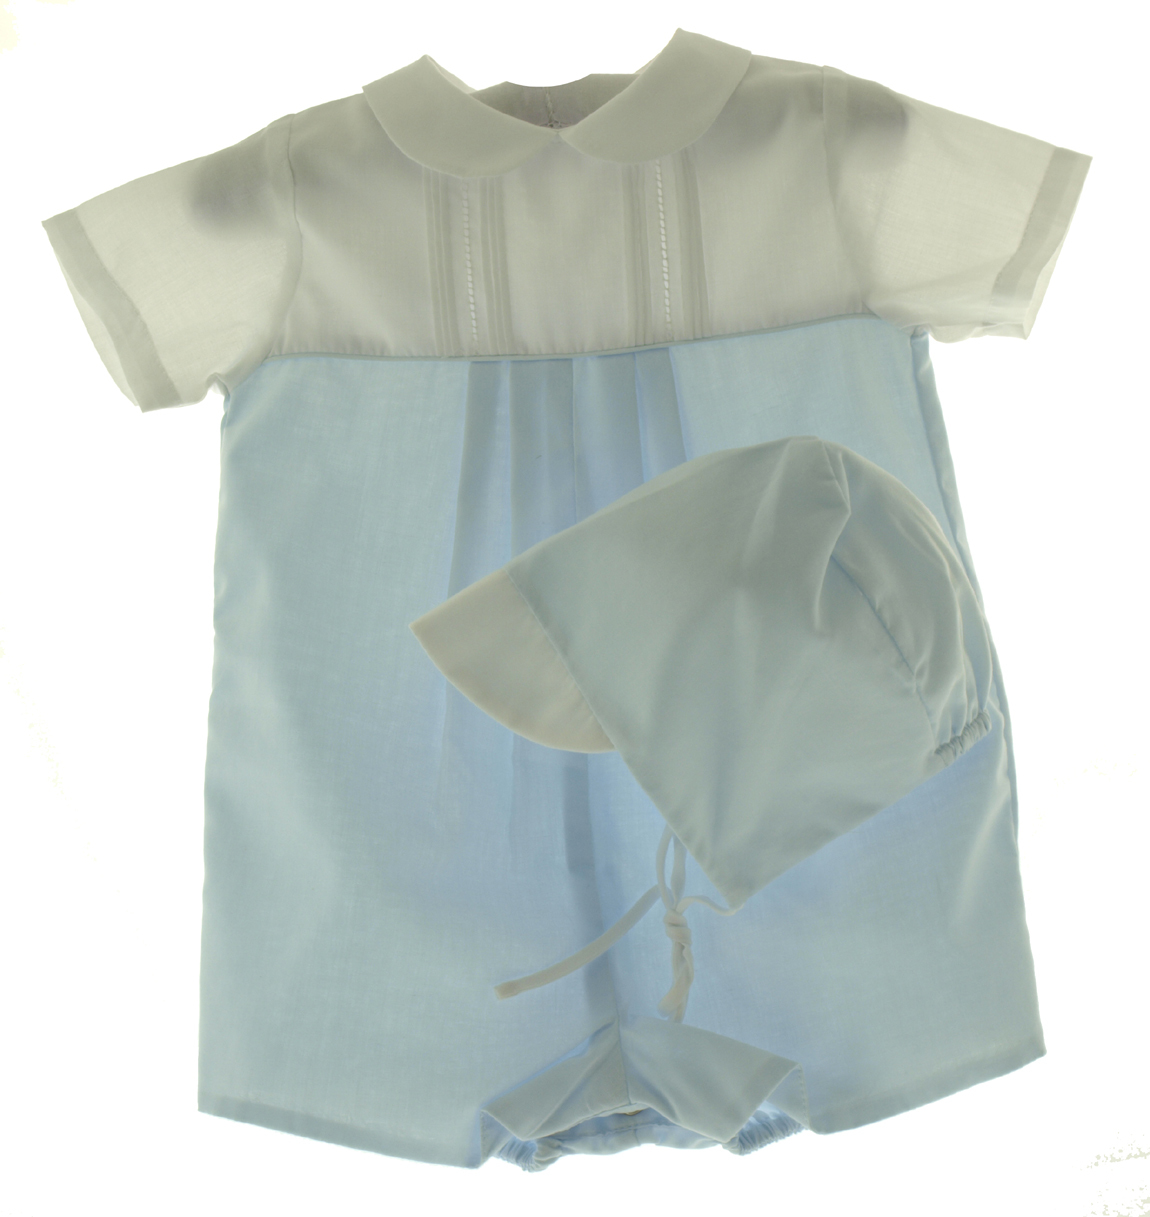 Blue & White Boys Newborn Romper